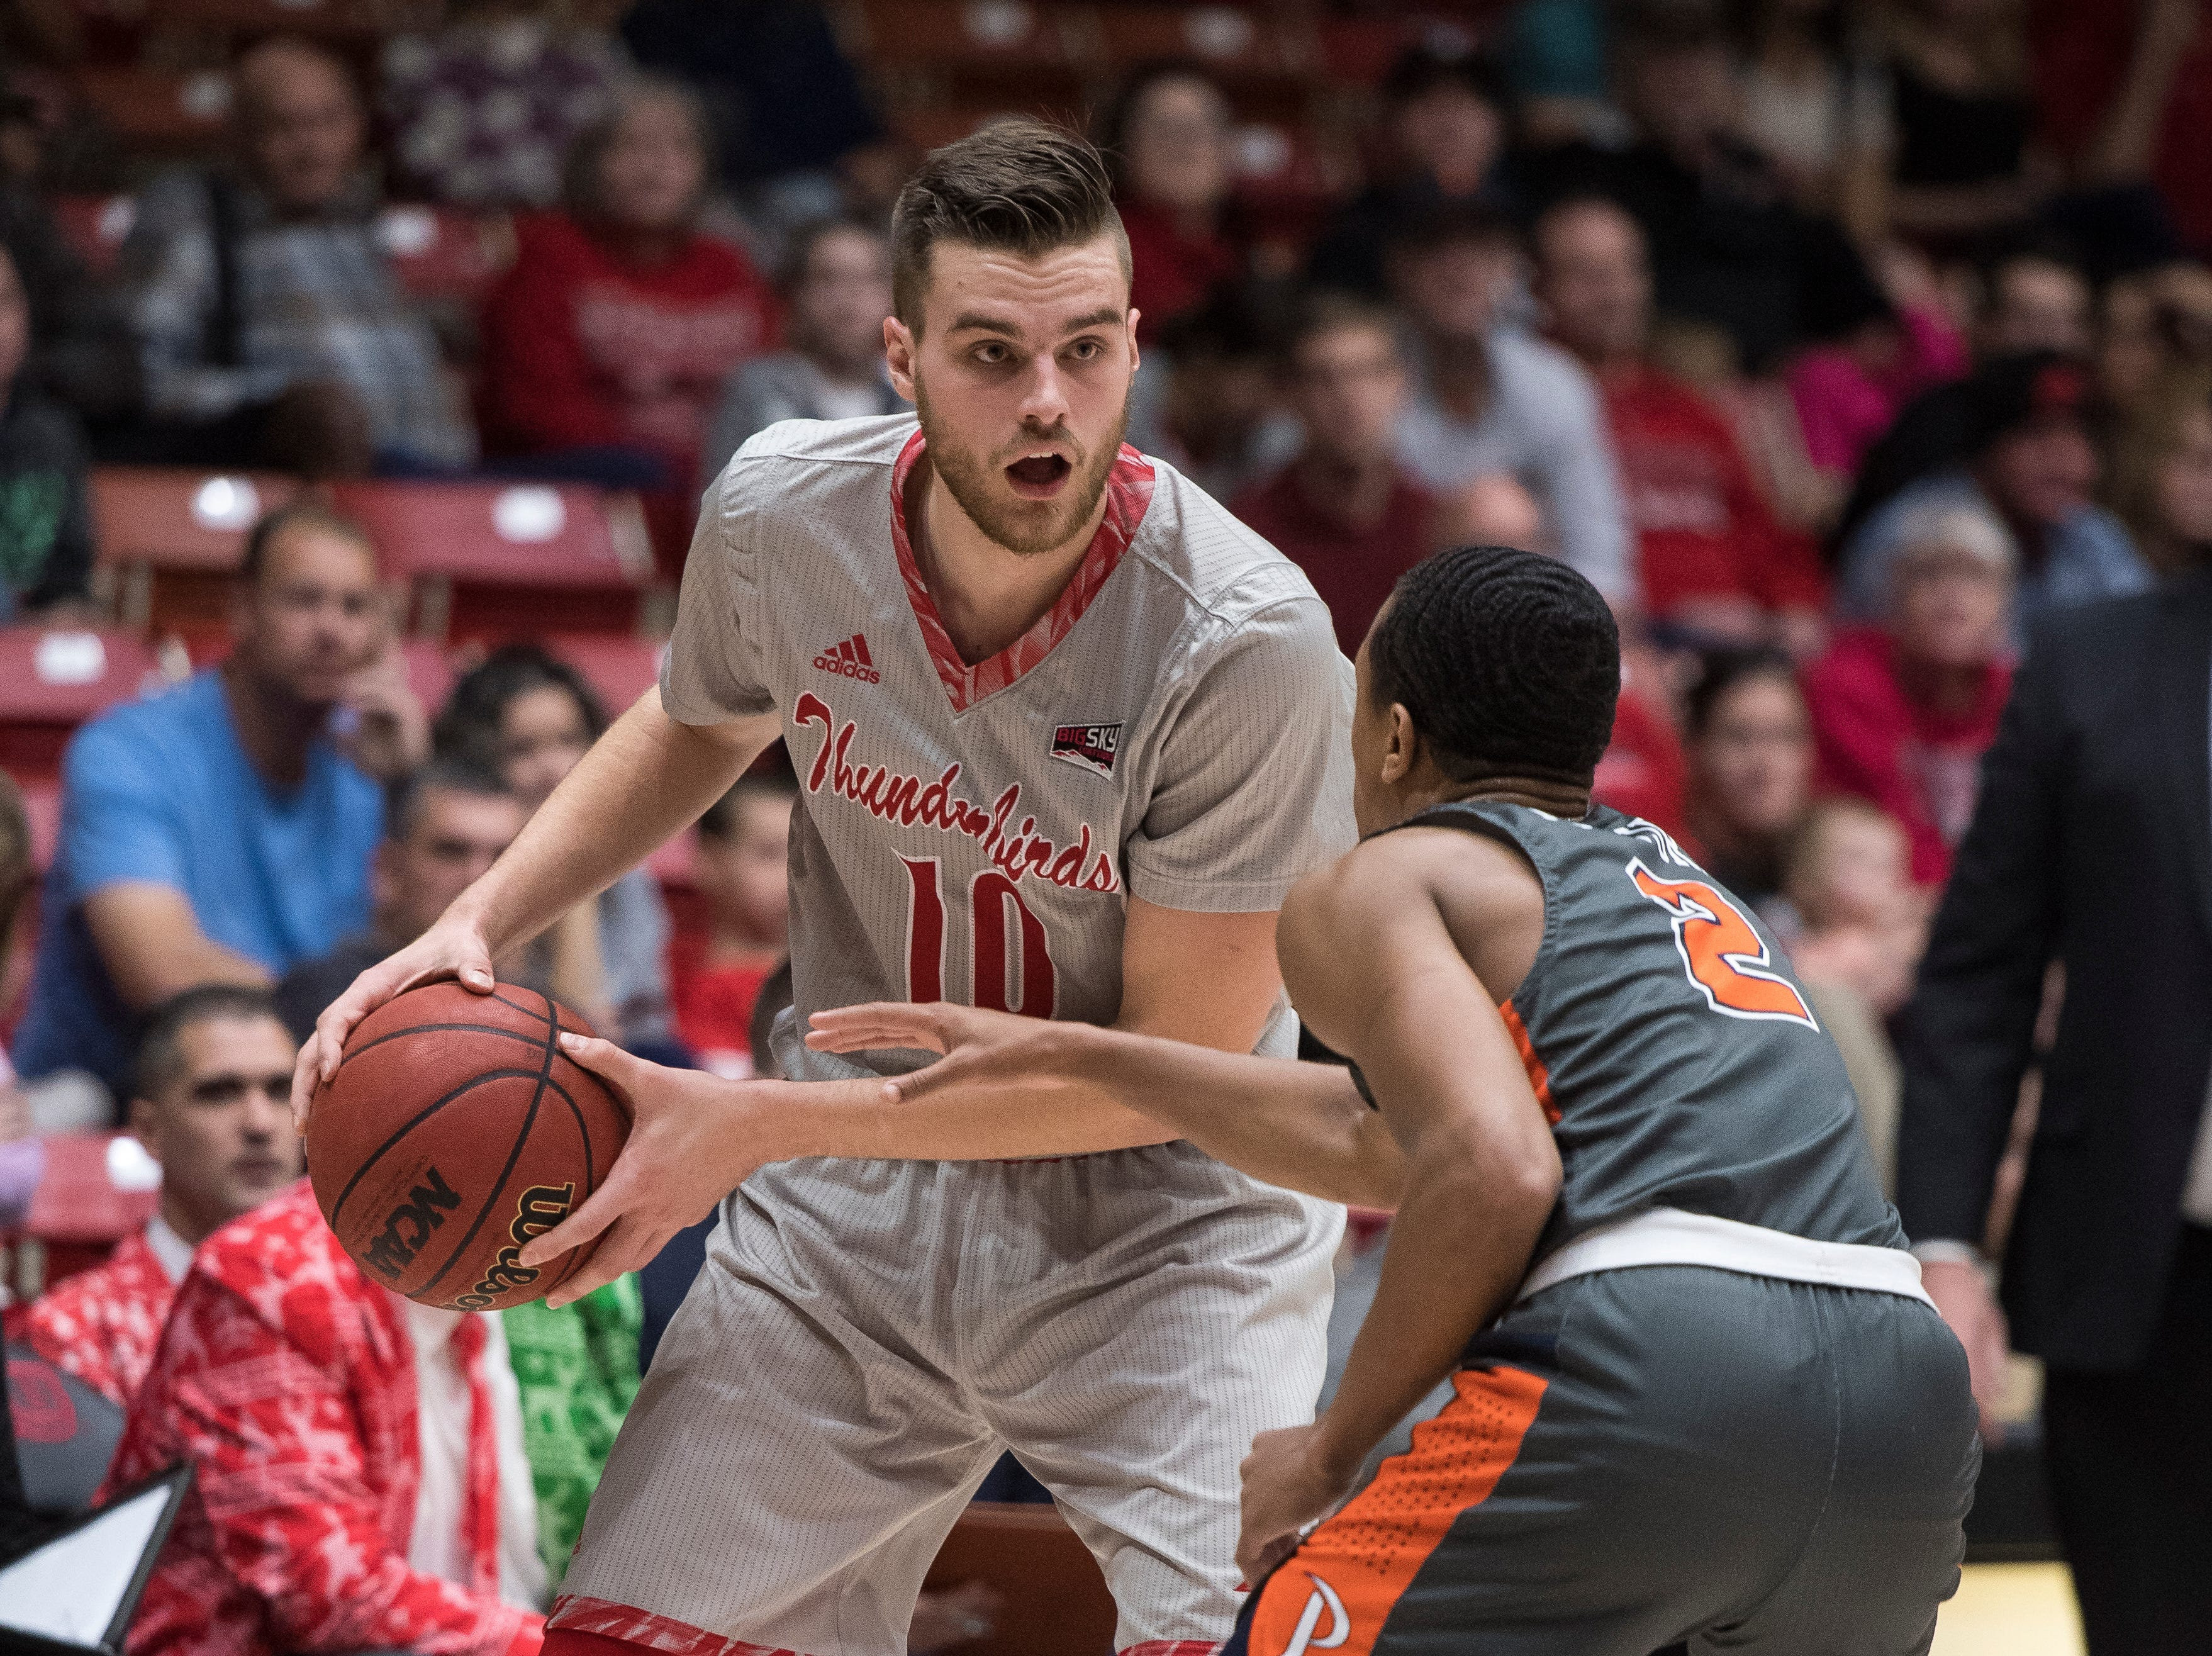 Southern Utah University junior Jacob Calloway (10) looks over the head of a Pepperdine defender in the America First Event Center Saturday, December 15, 2018. SUU won in overtime, 78-69.